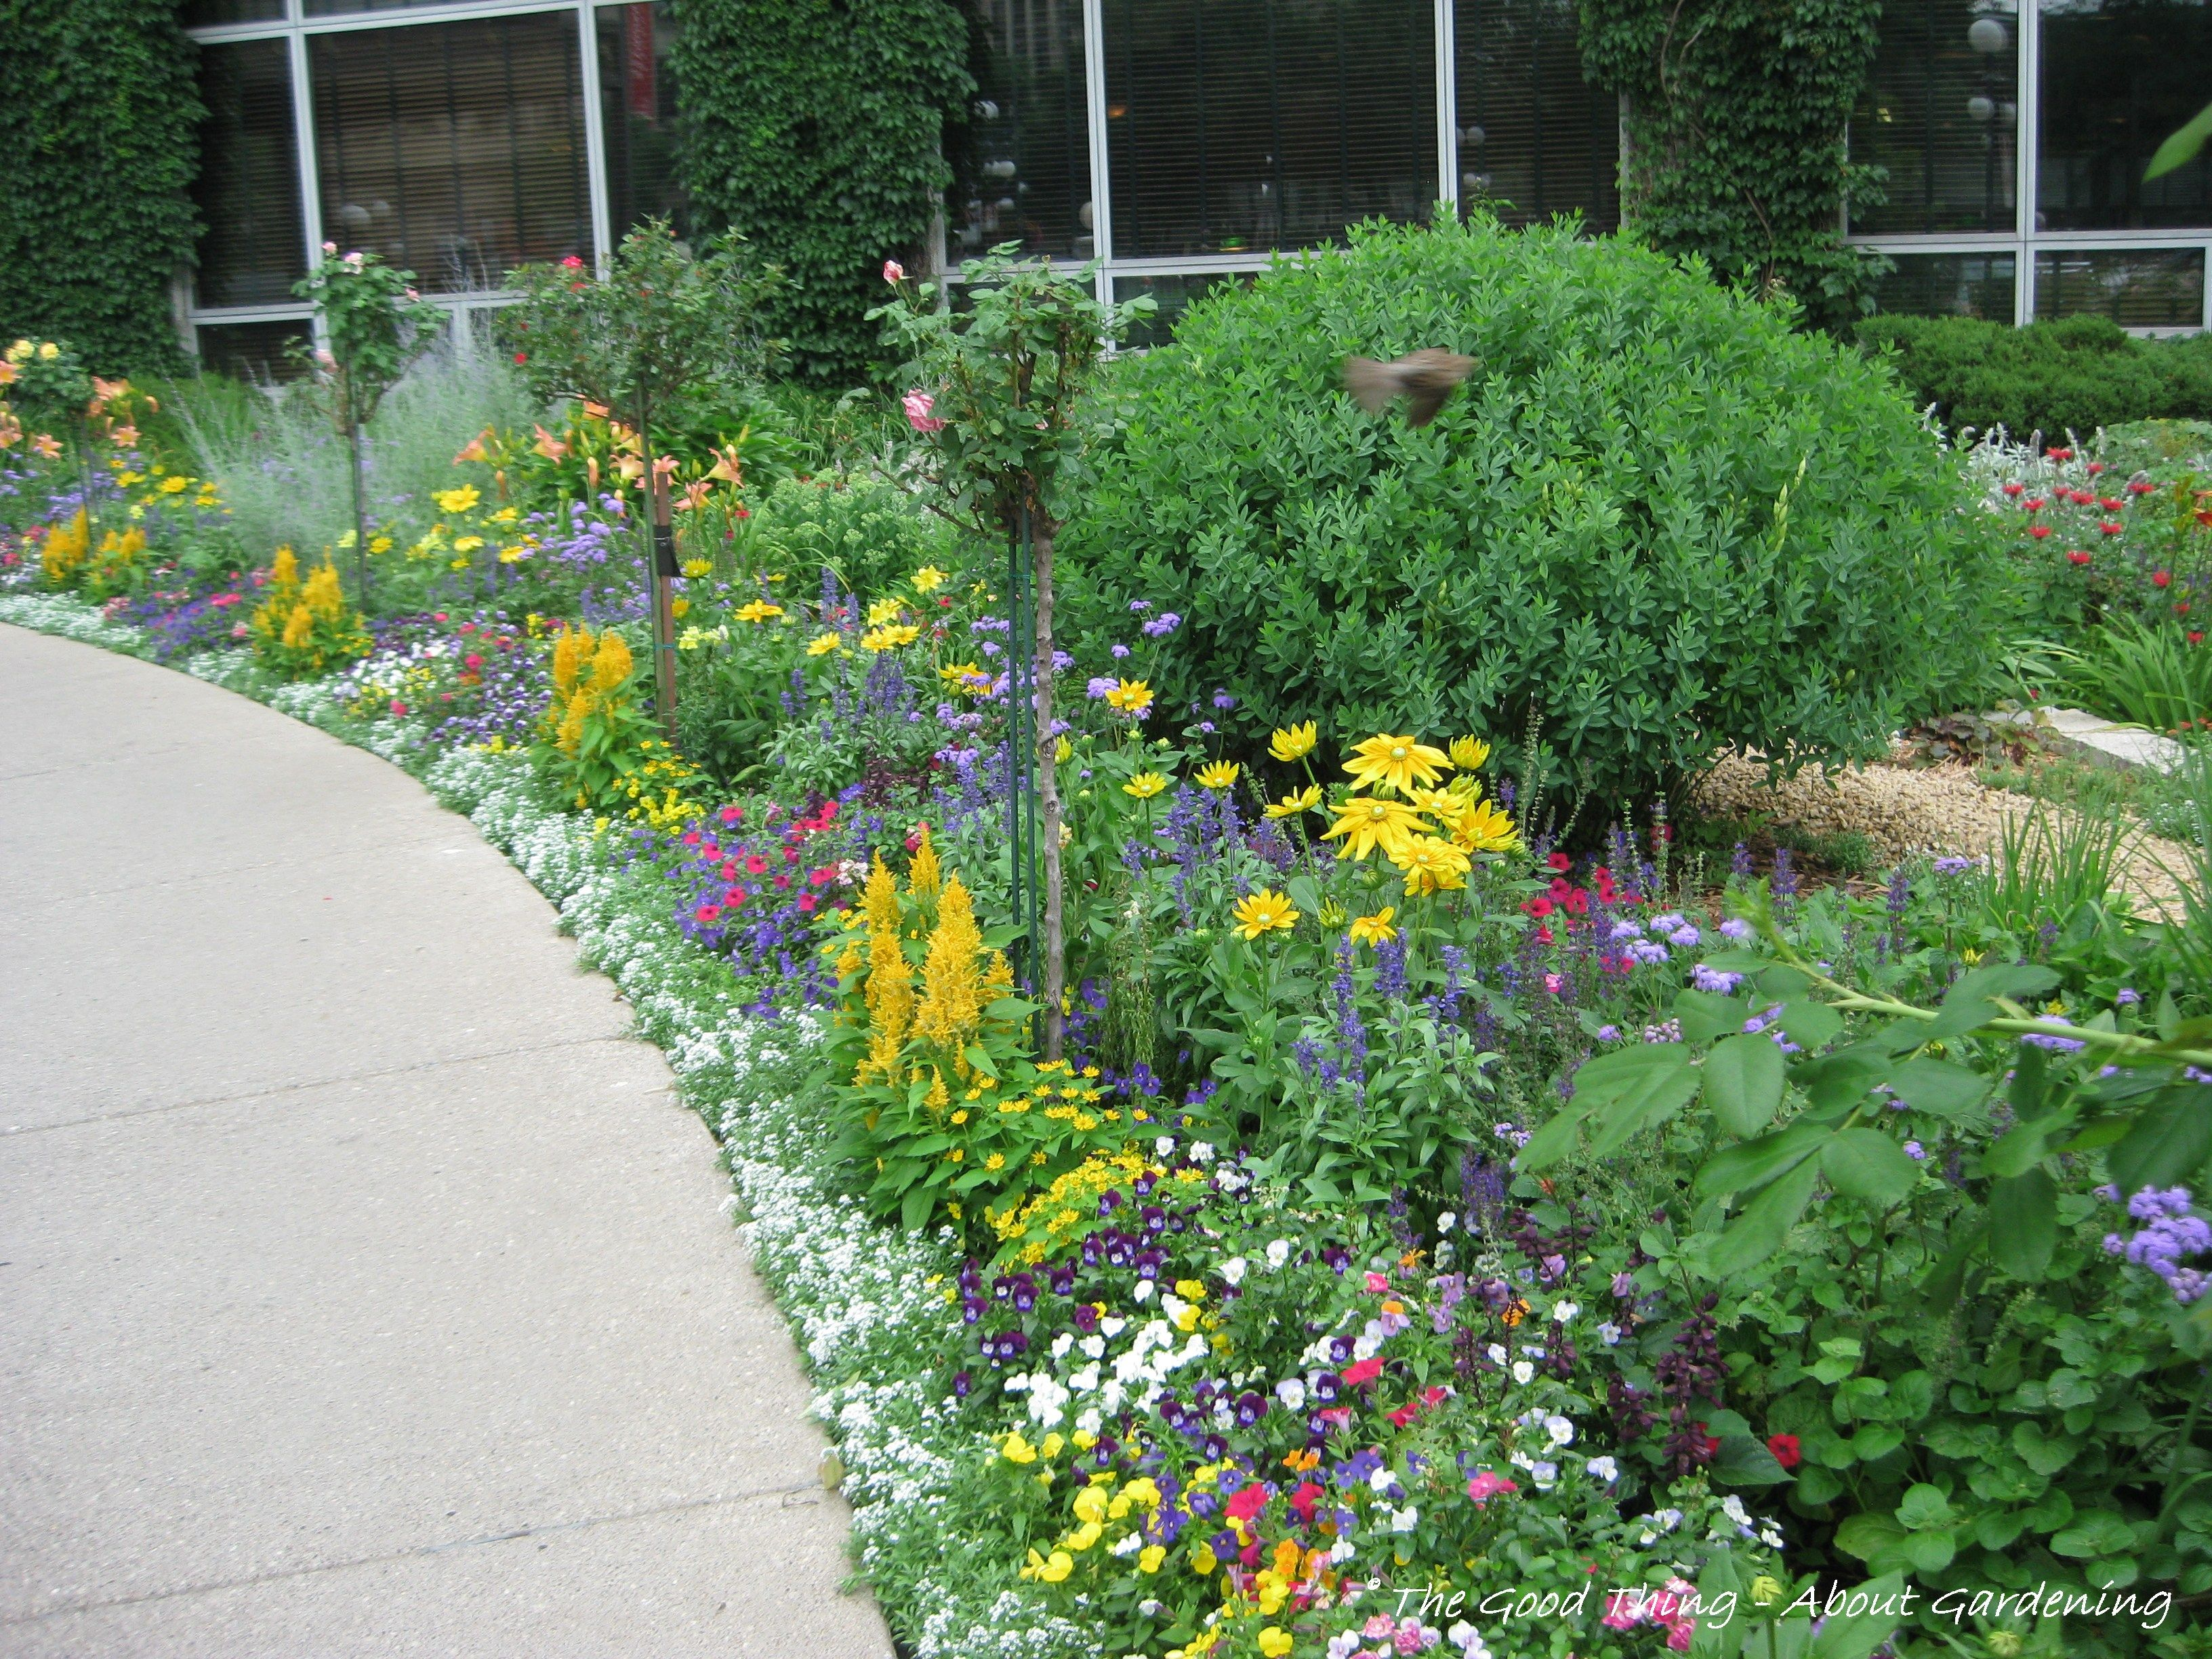 garden edging next to sidewalk flower gardens include annuals to add color and summer blooming - Vegetable Garden Ideas For Minnesota